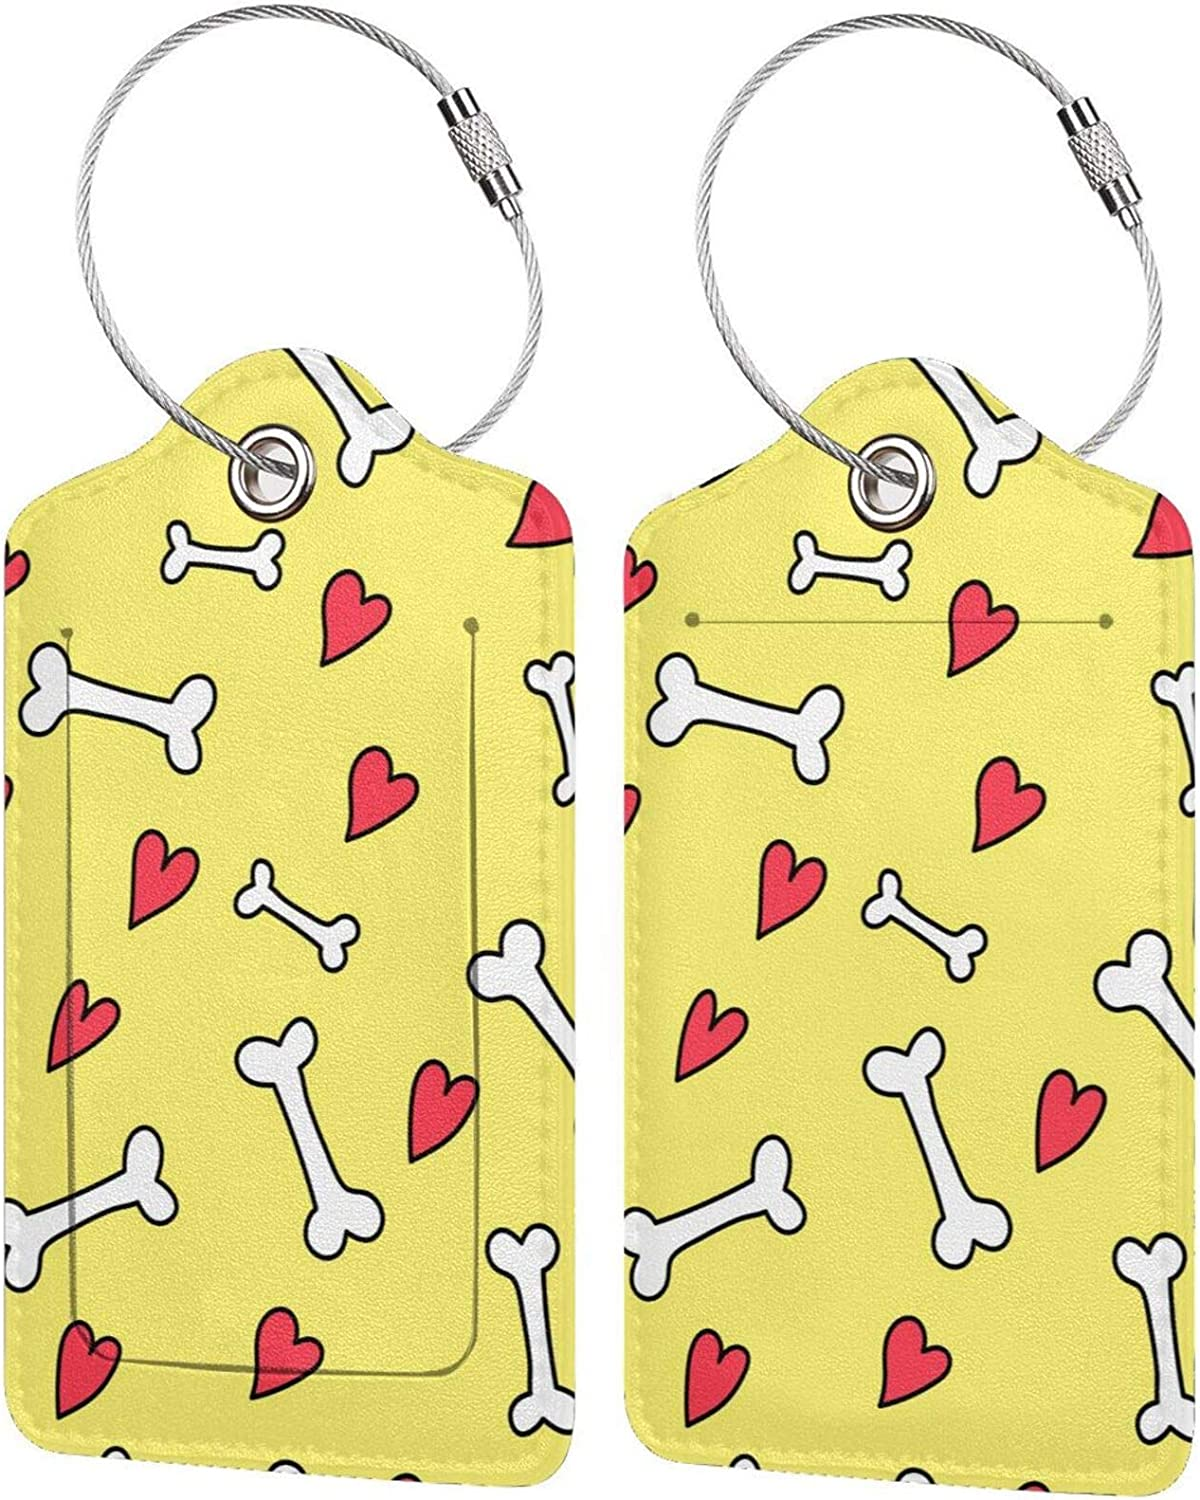 XKAWPC Cute Doodle Free Shipping New Bones Max 75% OFF and Hearts Luggage Fashion Tag Leather